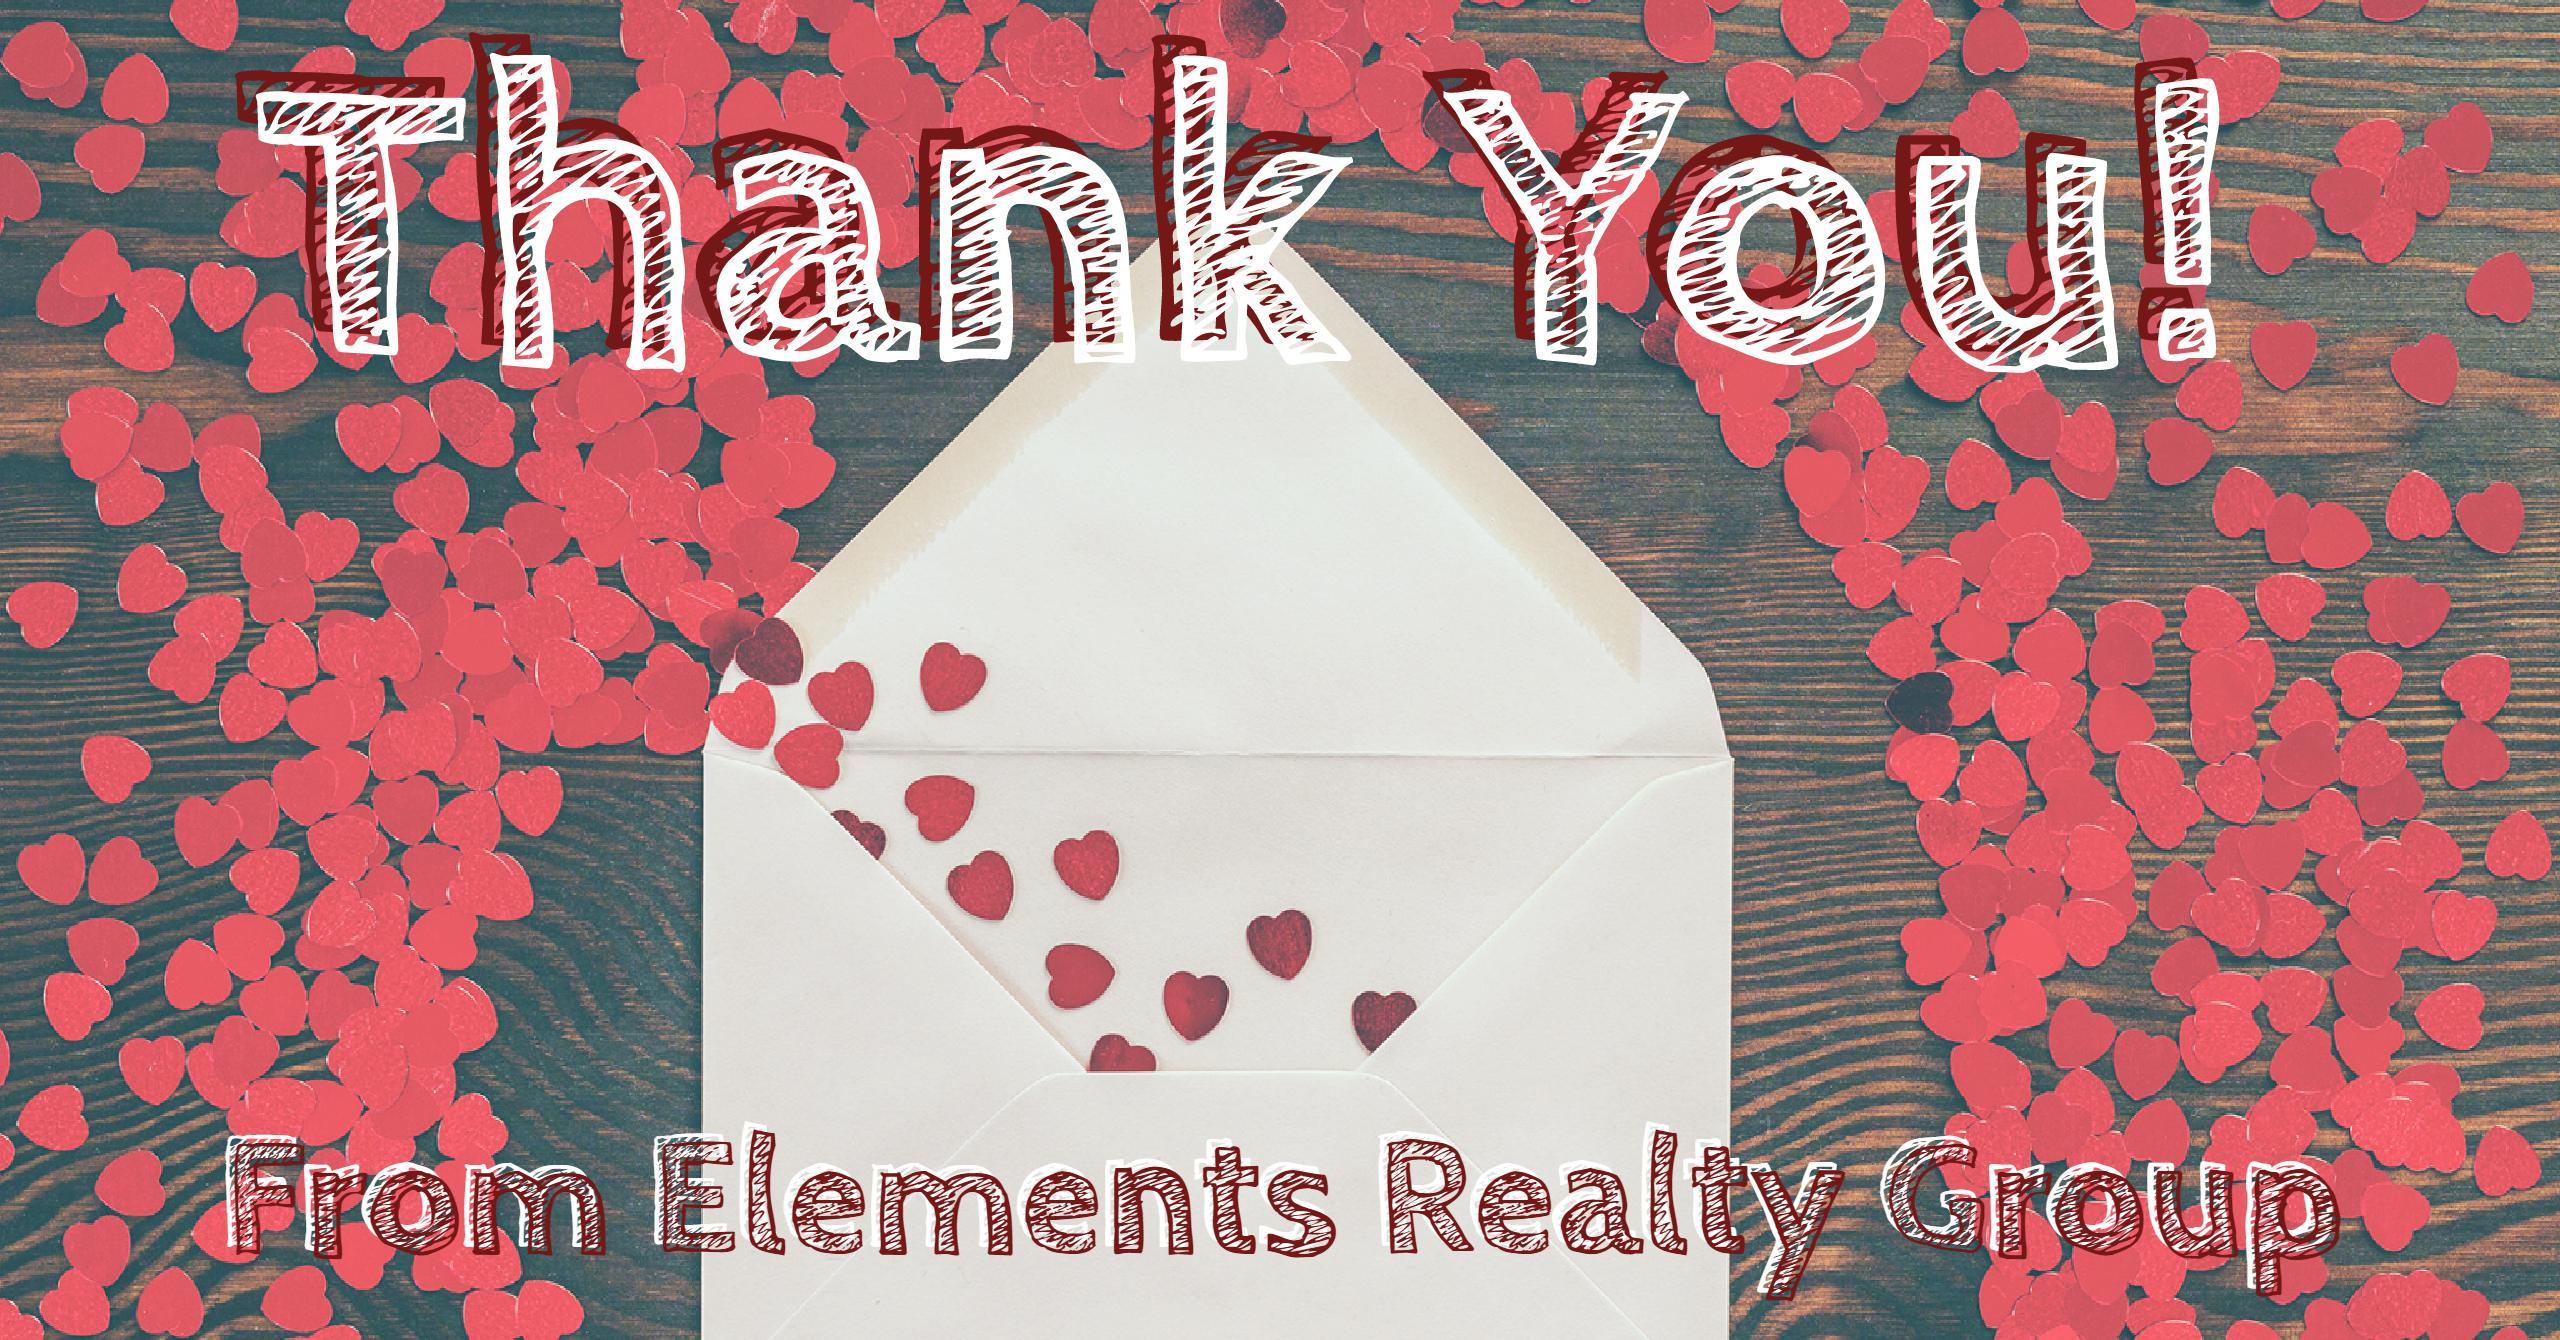 Thank you from Elements Realty Group